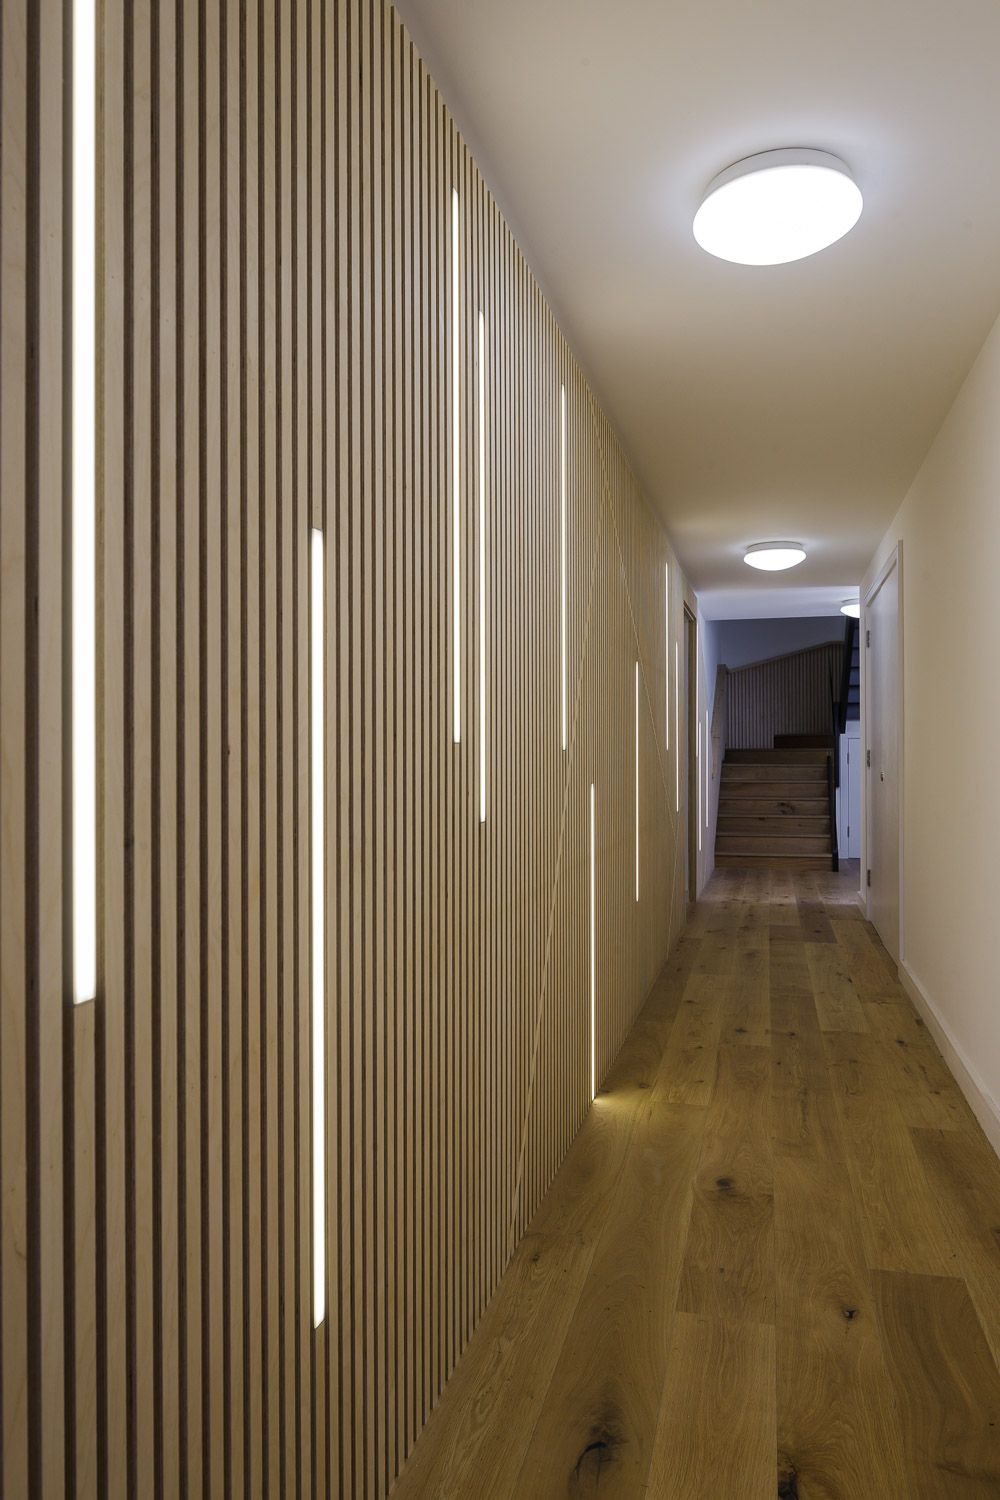 Led lighting dissecting a wall of plywood strips in corridor at led lighting dissecting a wall of plywood strips in corridor at wilberforce road mozeypictures